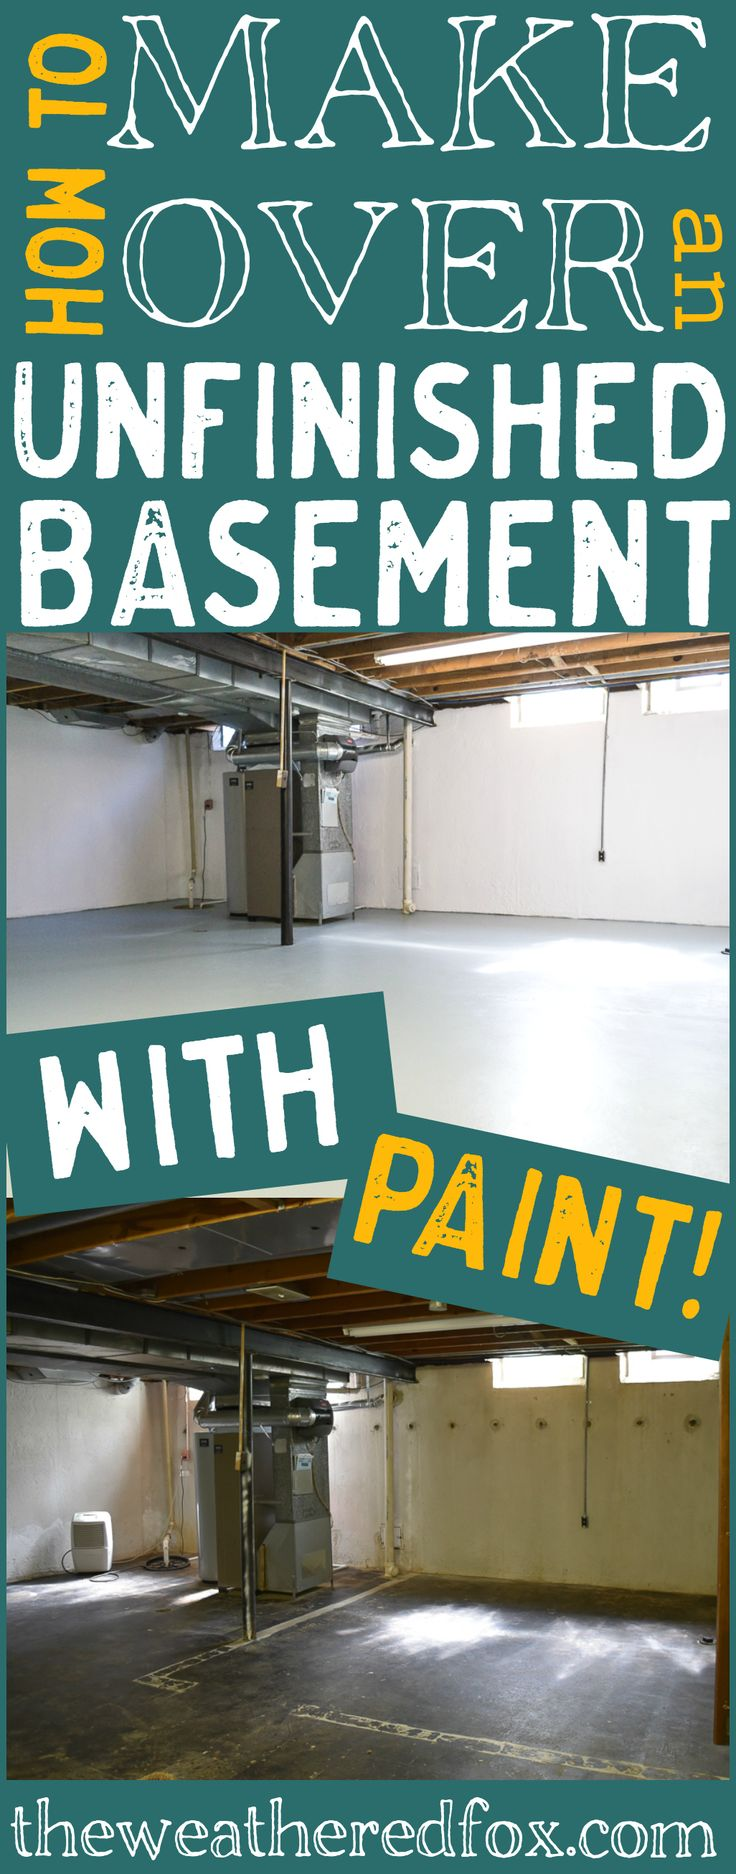 Unfinished basement ideas that sold our house. How to give an unfinished basement a new look with paint.